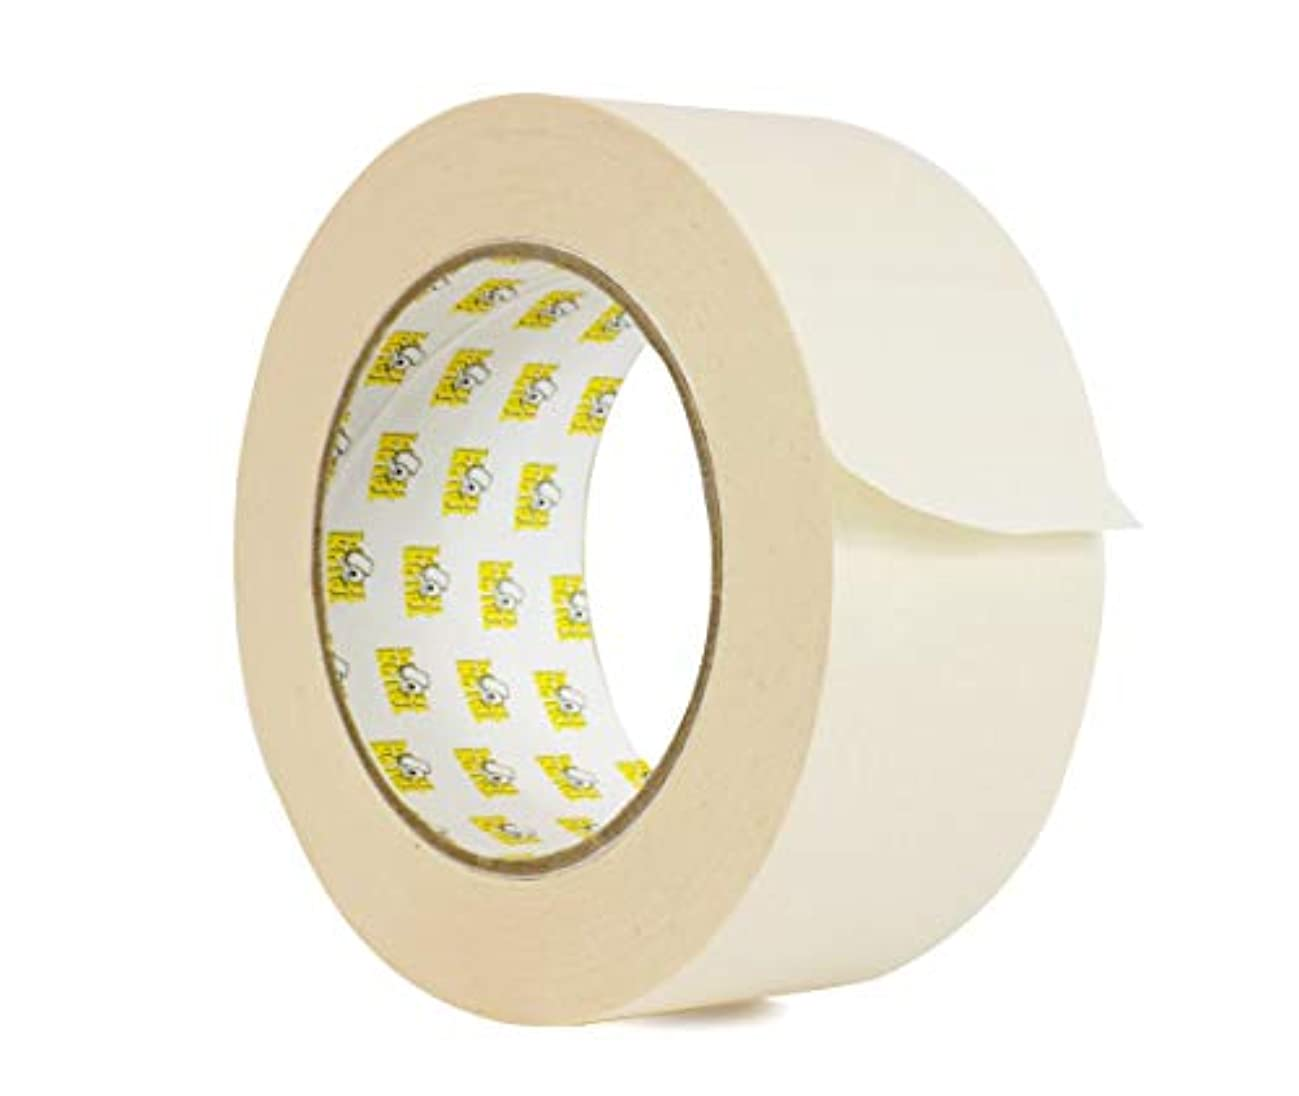 WOD GPM-63 Masking Tape 2 Inch for General Purpose/Painting - 1 Roll - 60 Yards per roll